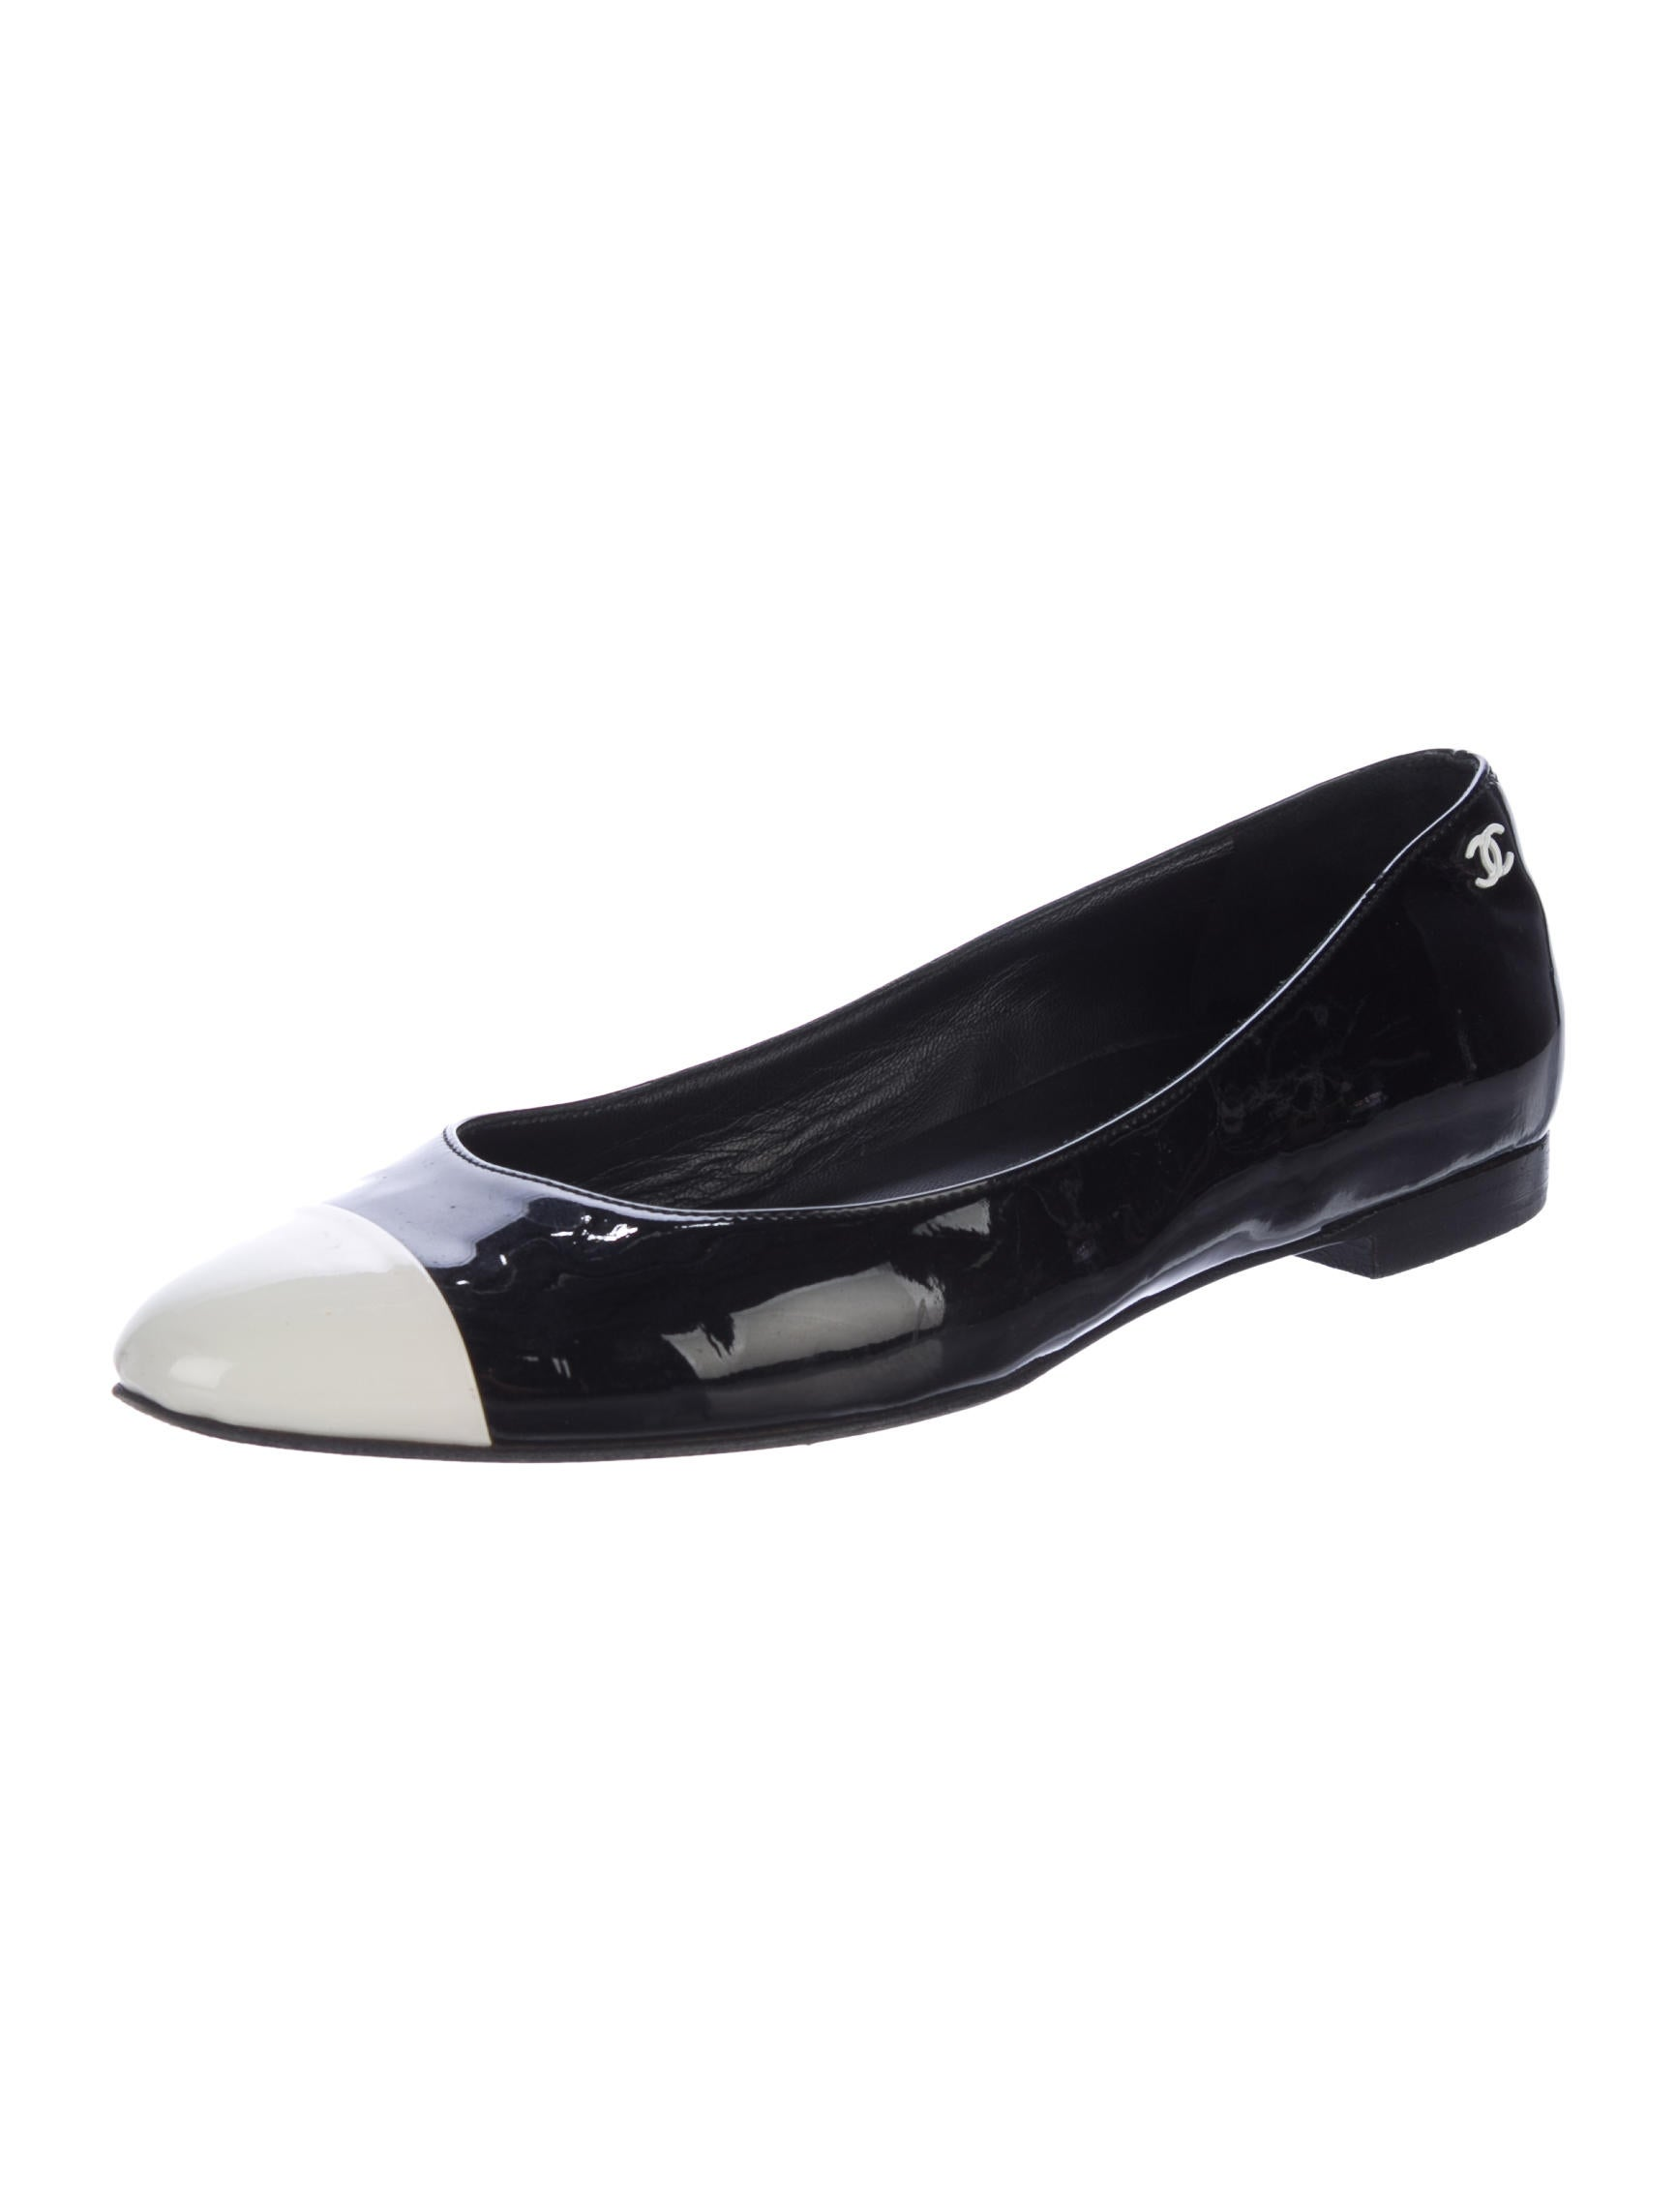 chanel cc patent leather flats shoes cha202821 the